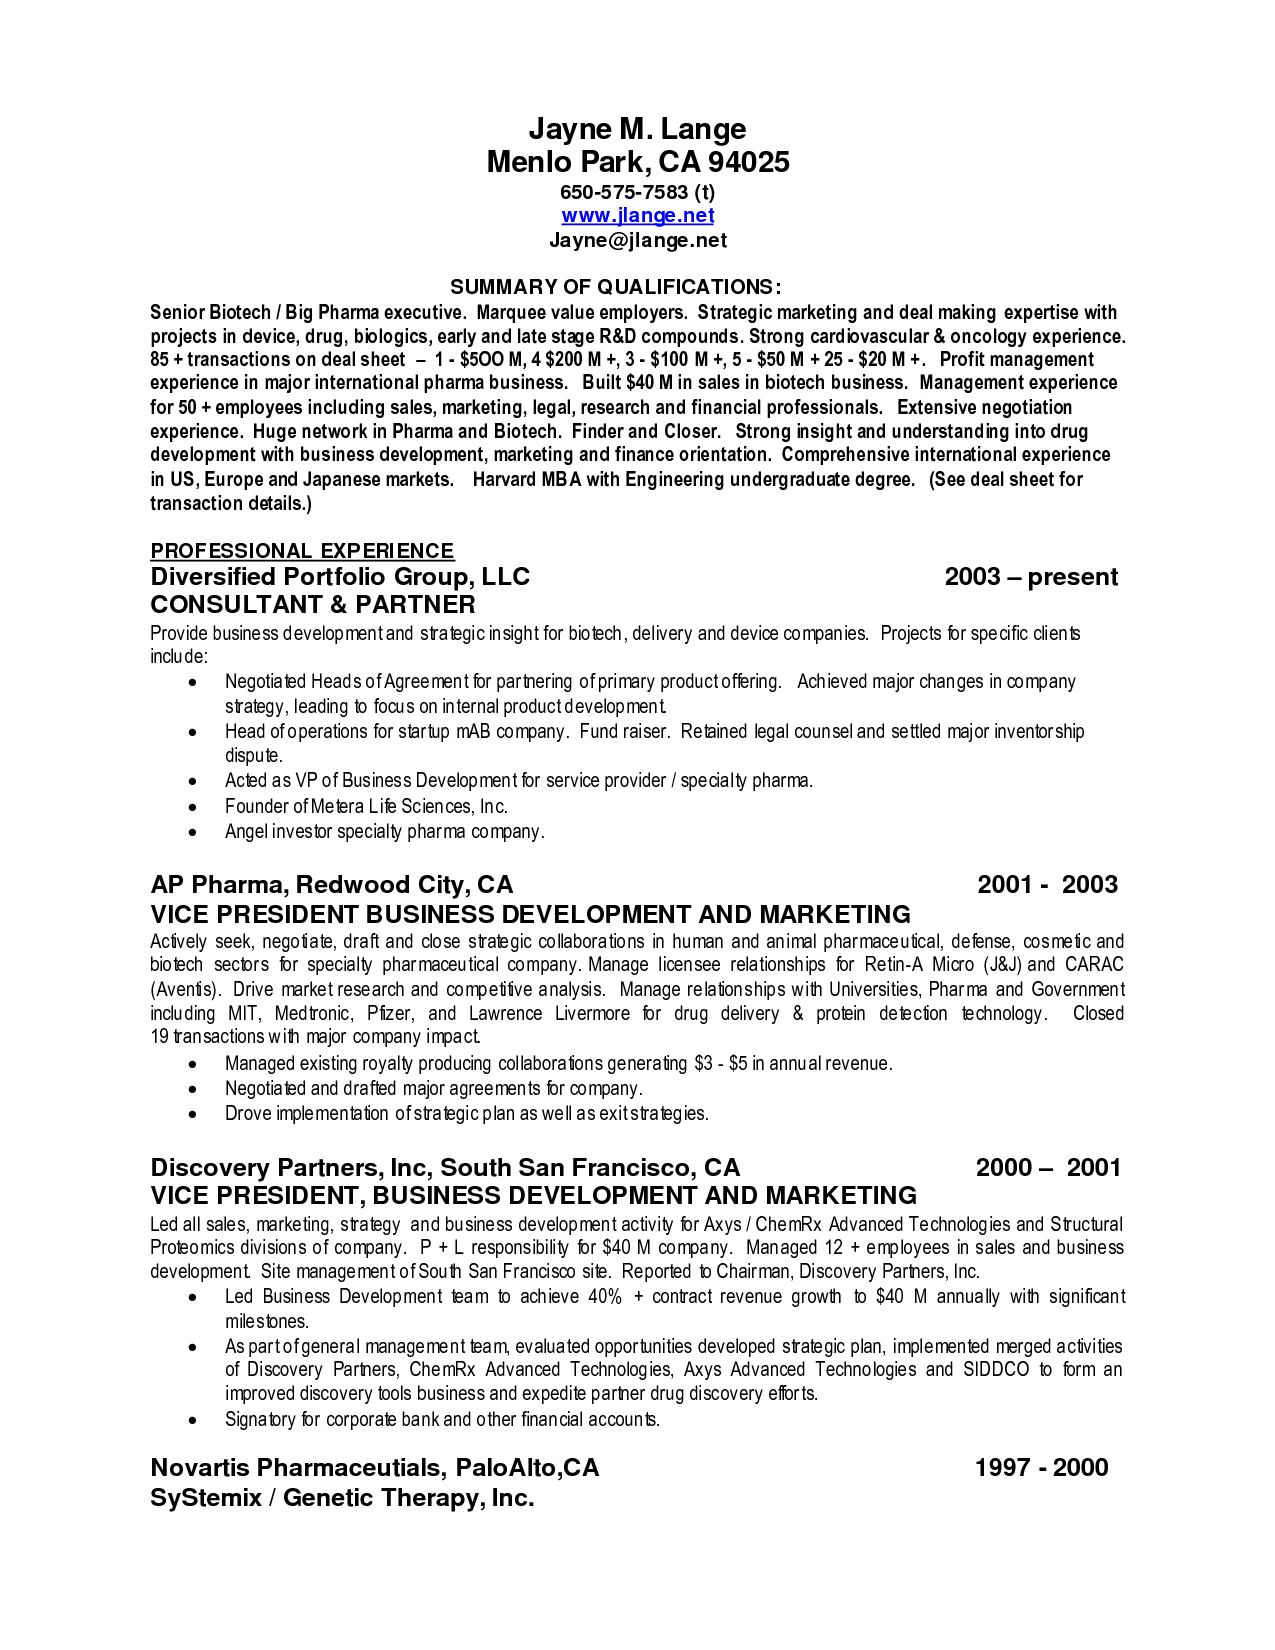 resume summary of qualifications samples april onthemarch co